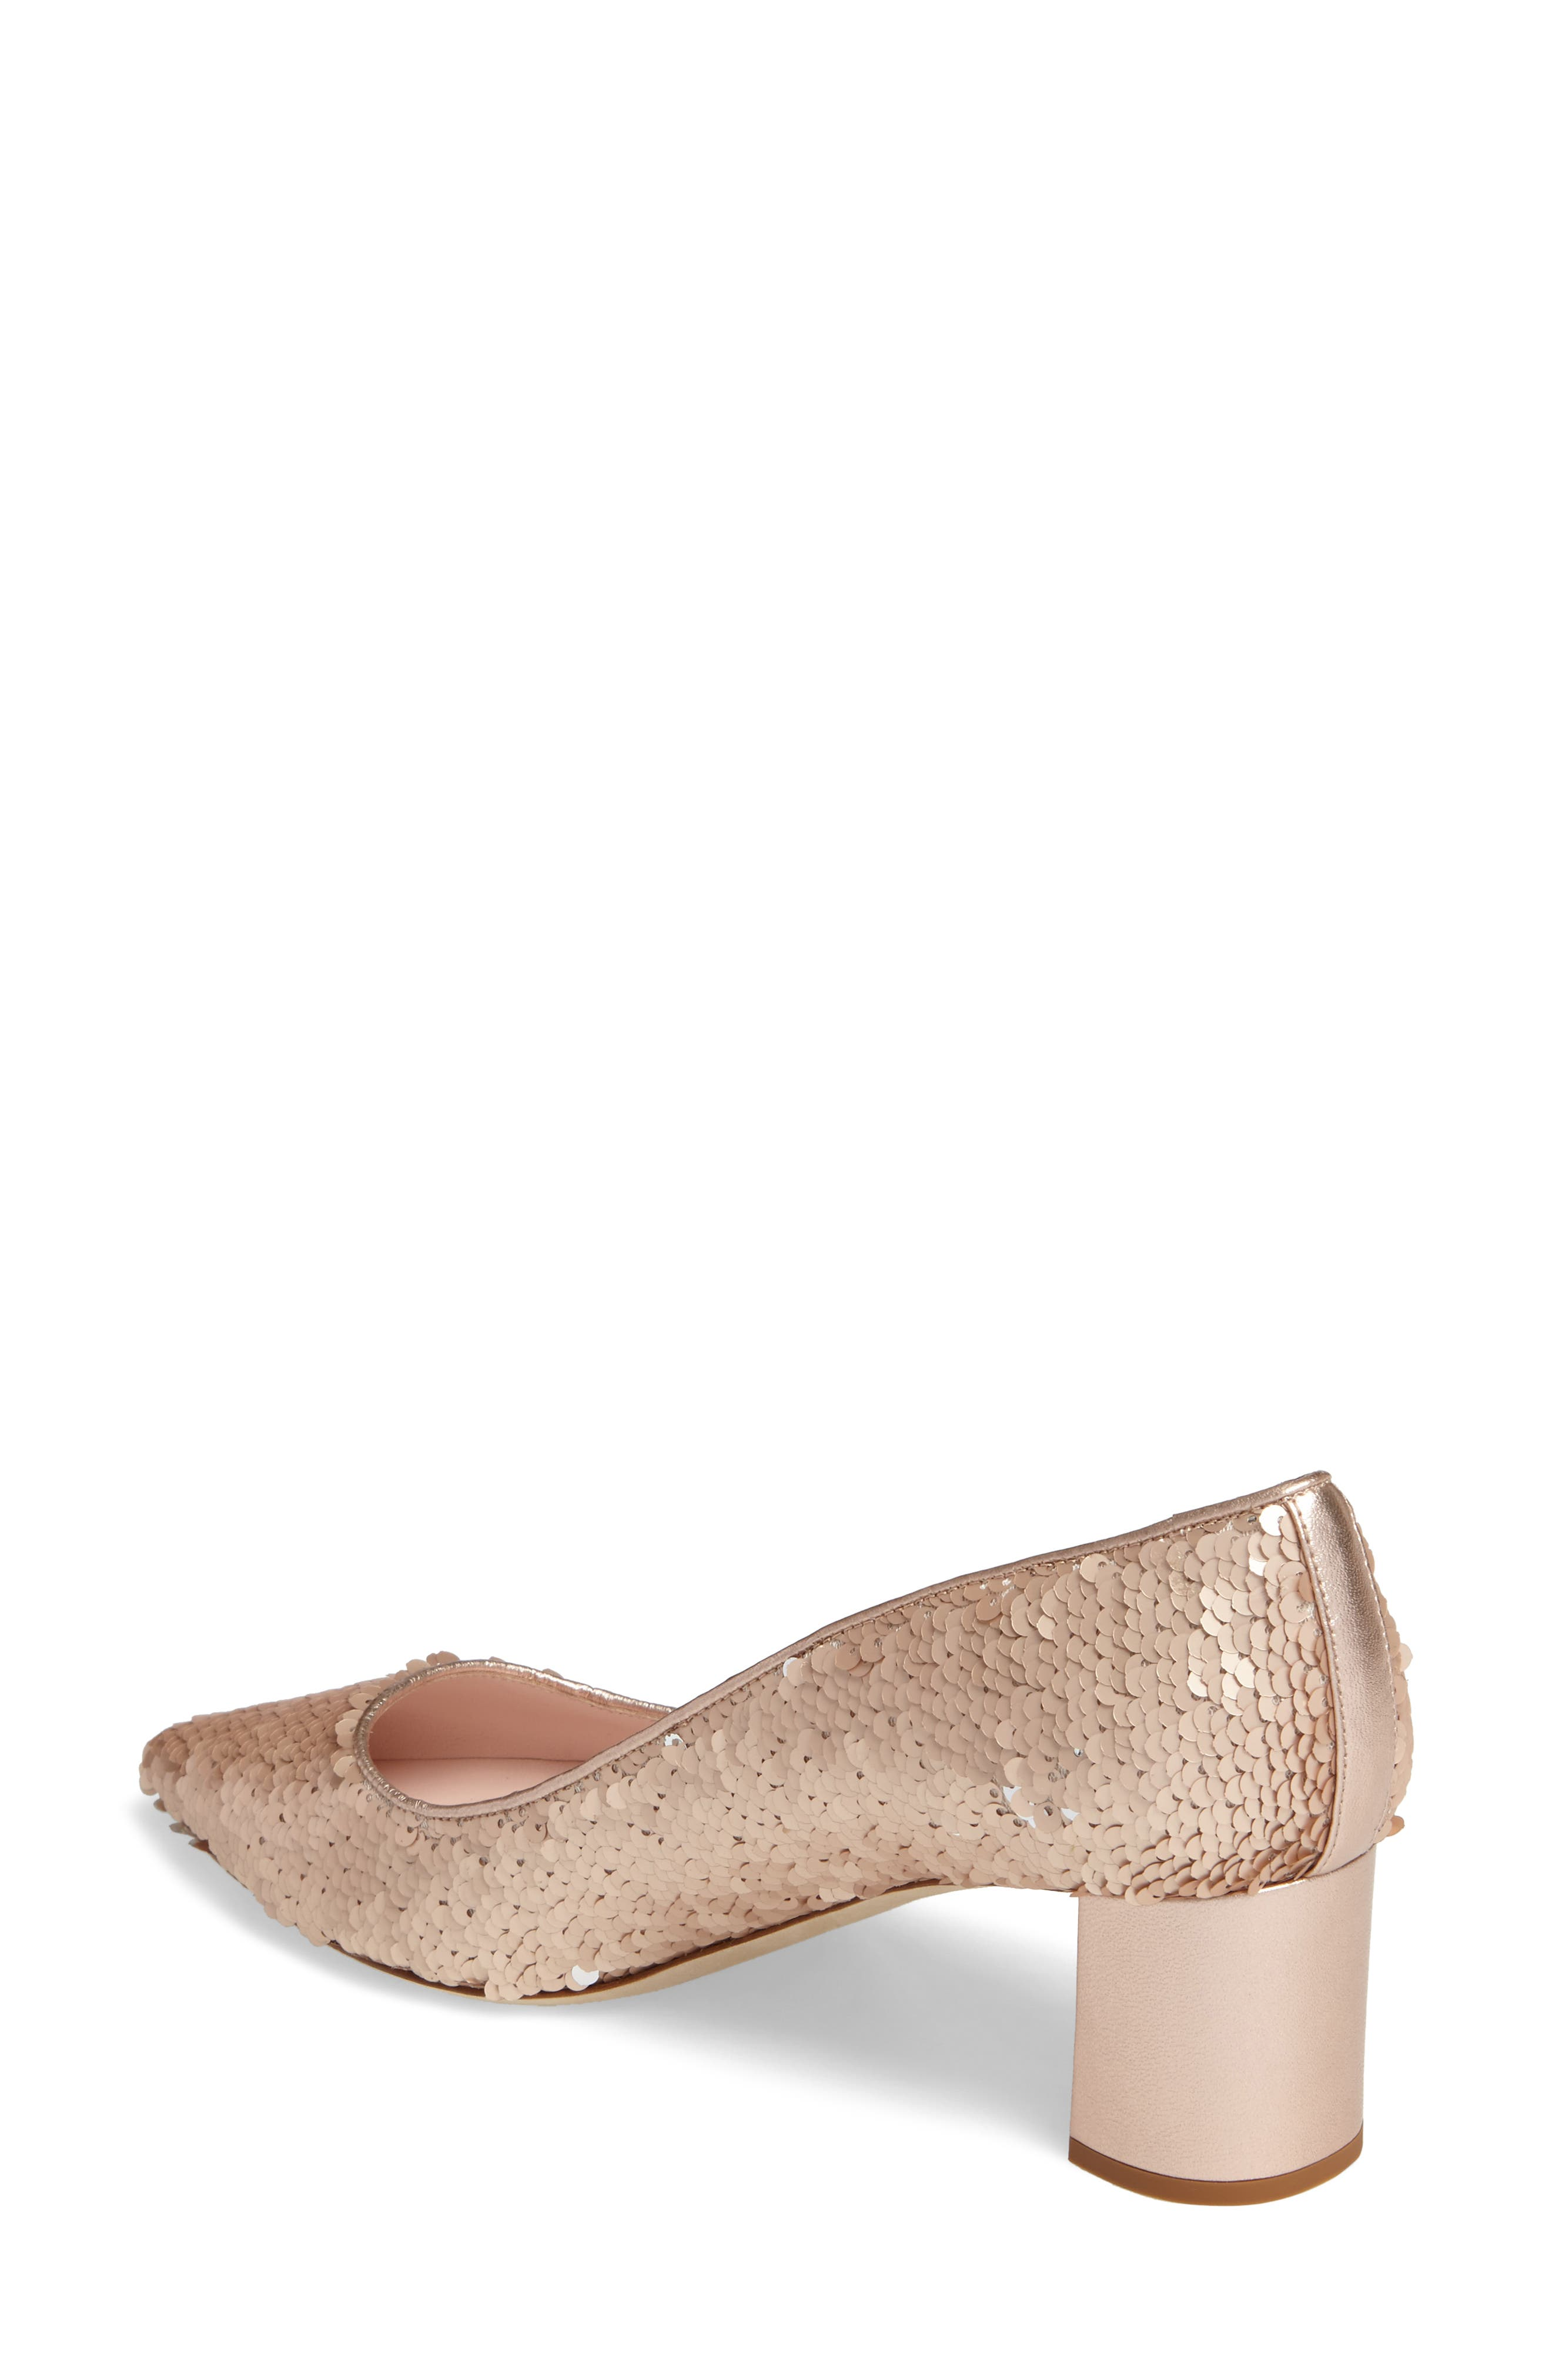 mauna sequin pump,                             Alternate thumbnail 2, color,                             Rose Gold/ Silver